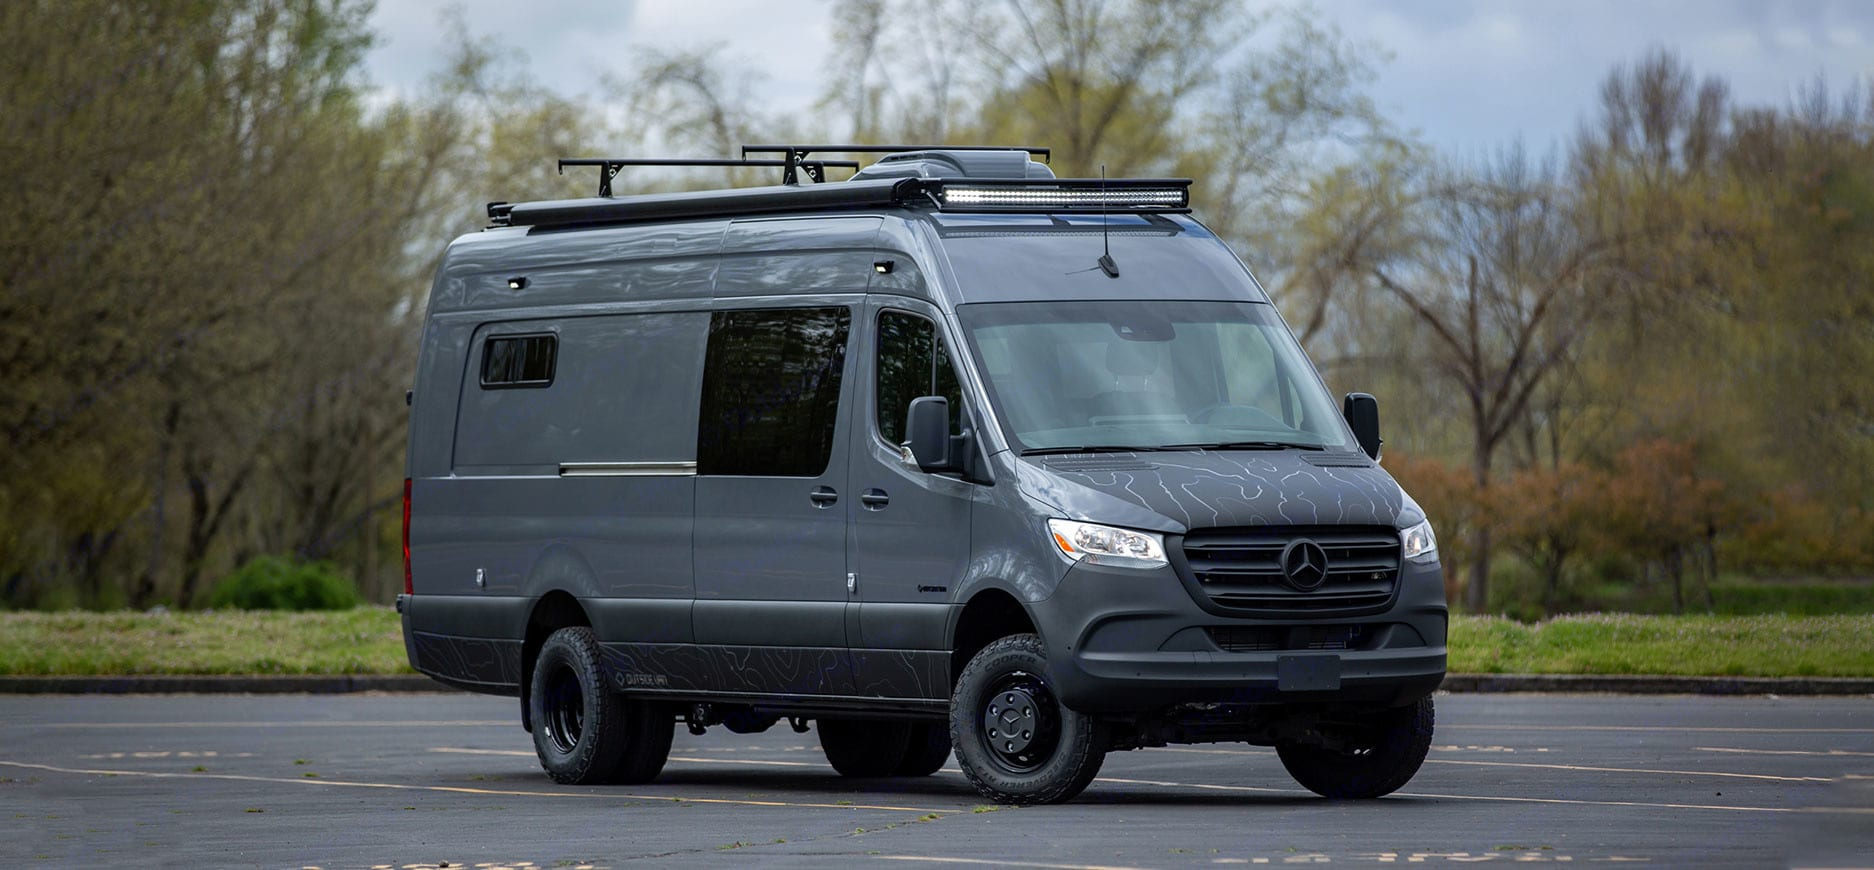 Command Post is a premium camper van ready for your next adventure!. Mercedes-Benz Sprinter 2019